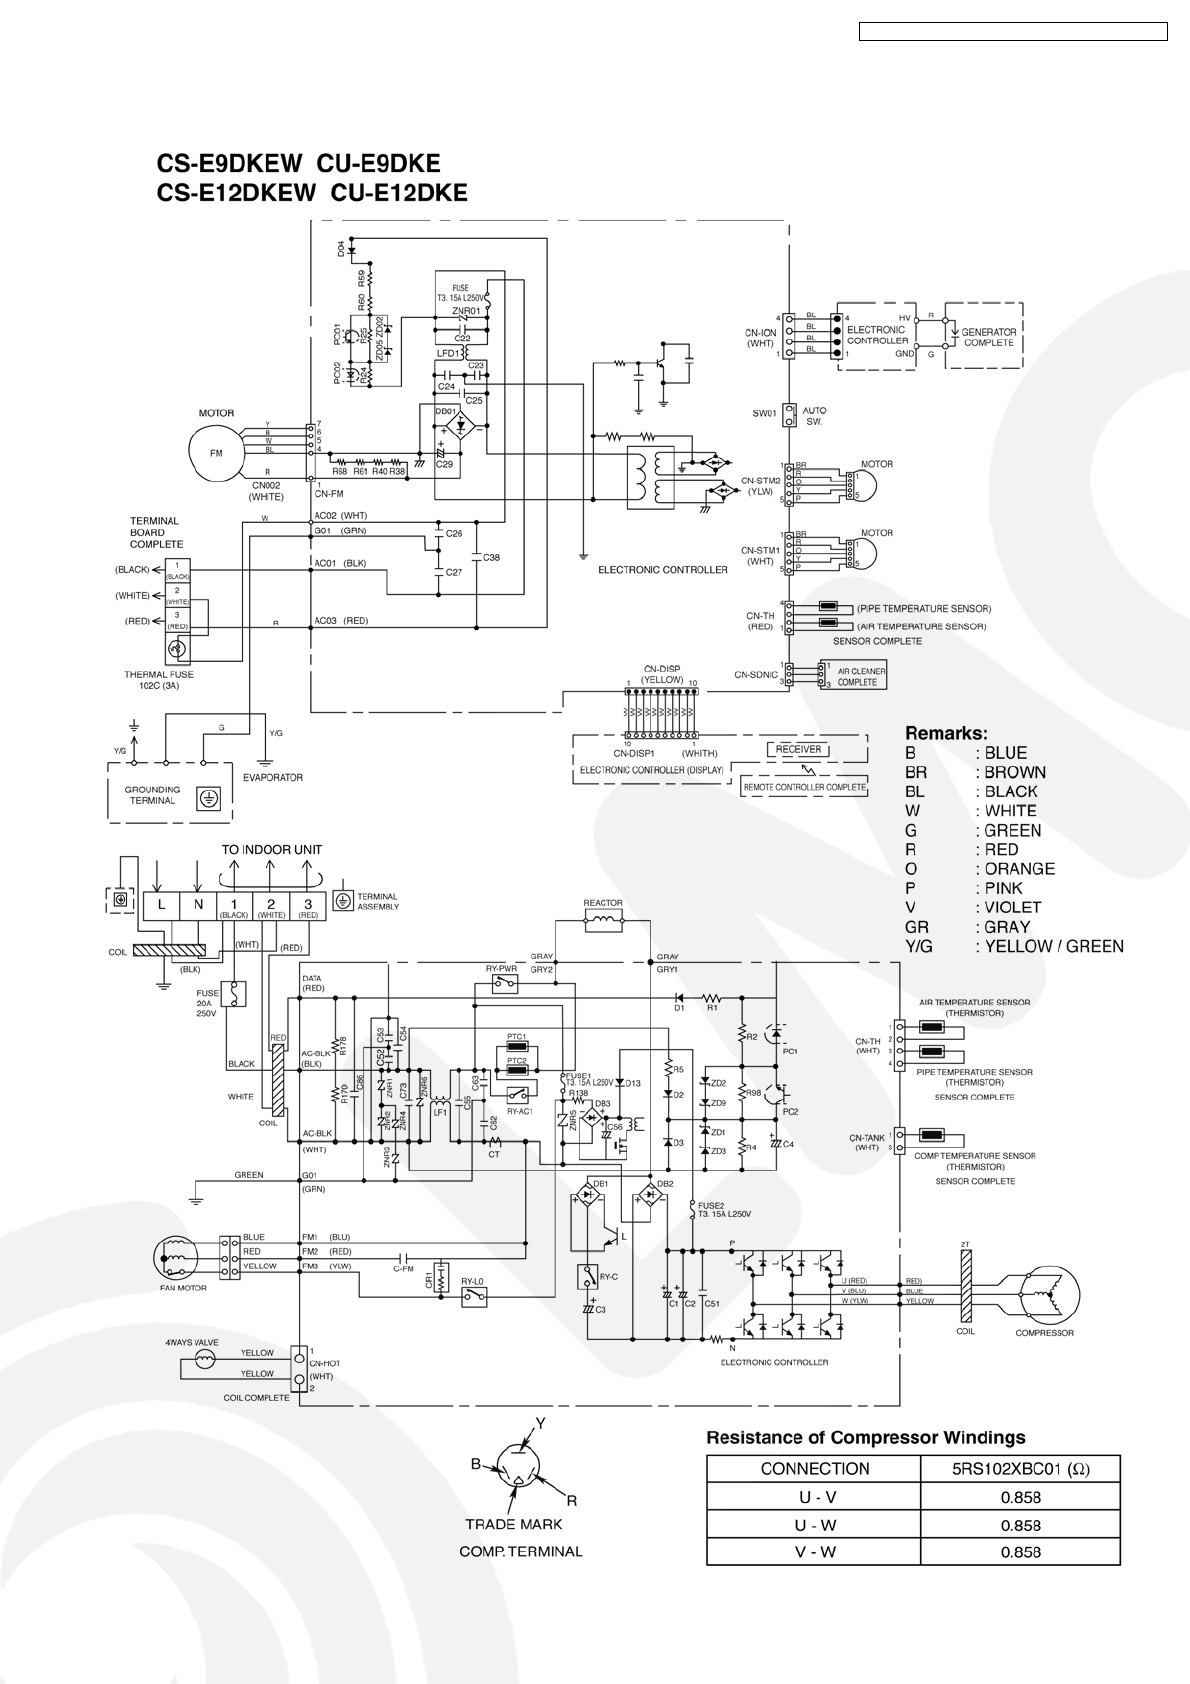 5bc1cf0d d725 4126 8b82 4c2e87dbfb59 bgf?resize=665%2C941 model hblg1200r room air conditioner wiring diagram model wiring  at n-0.co